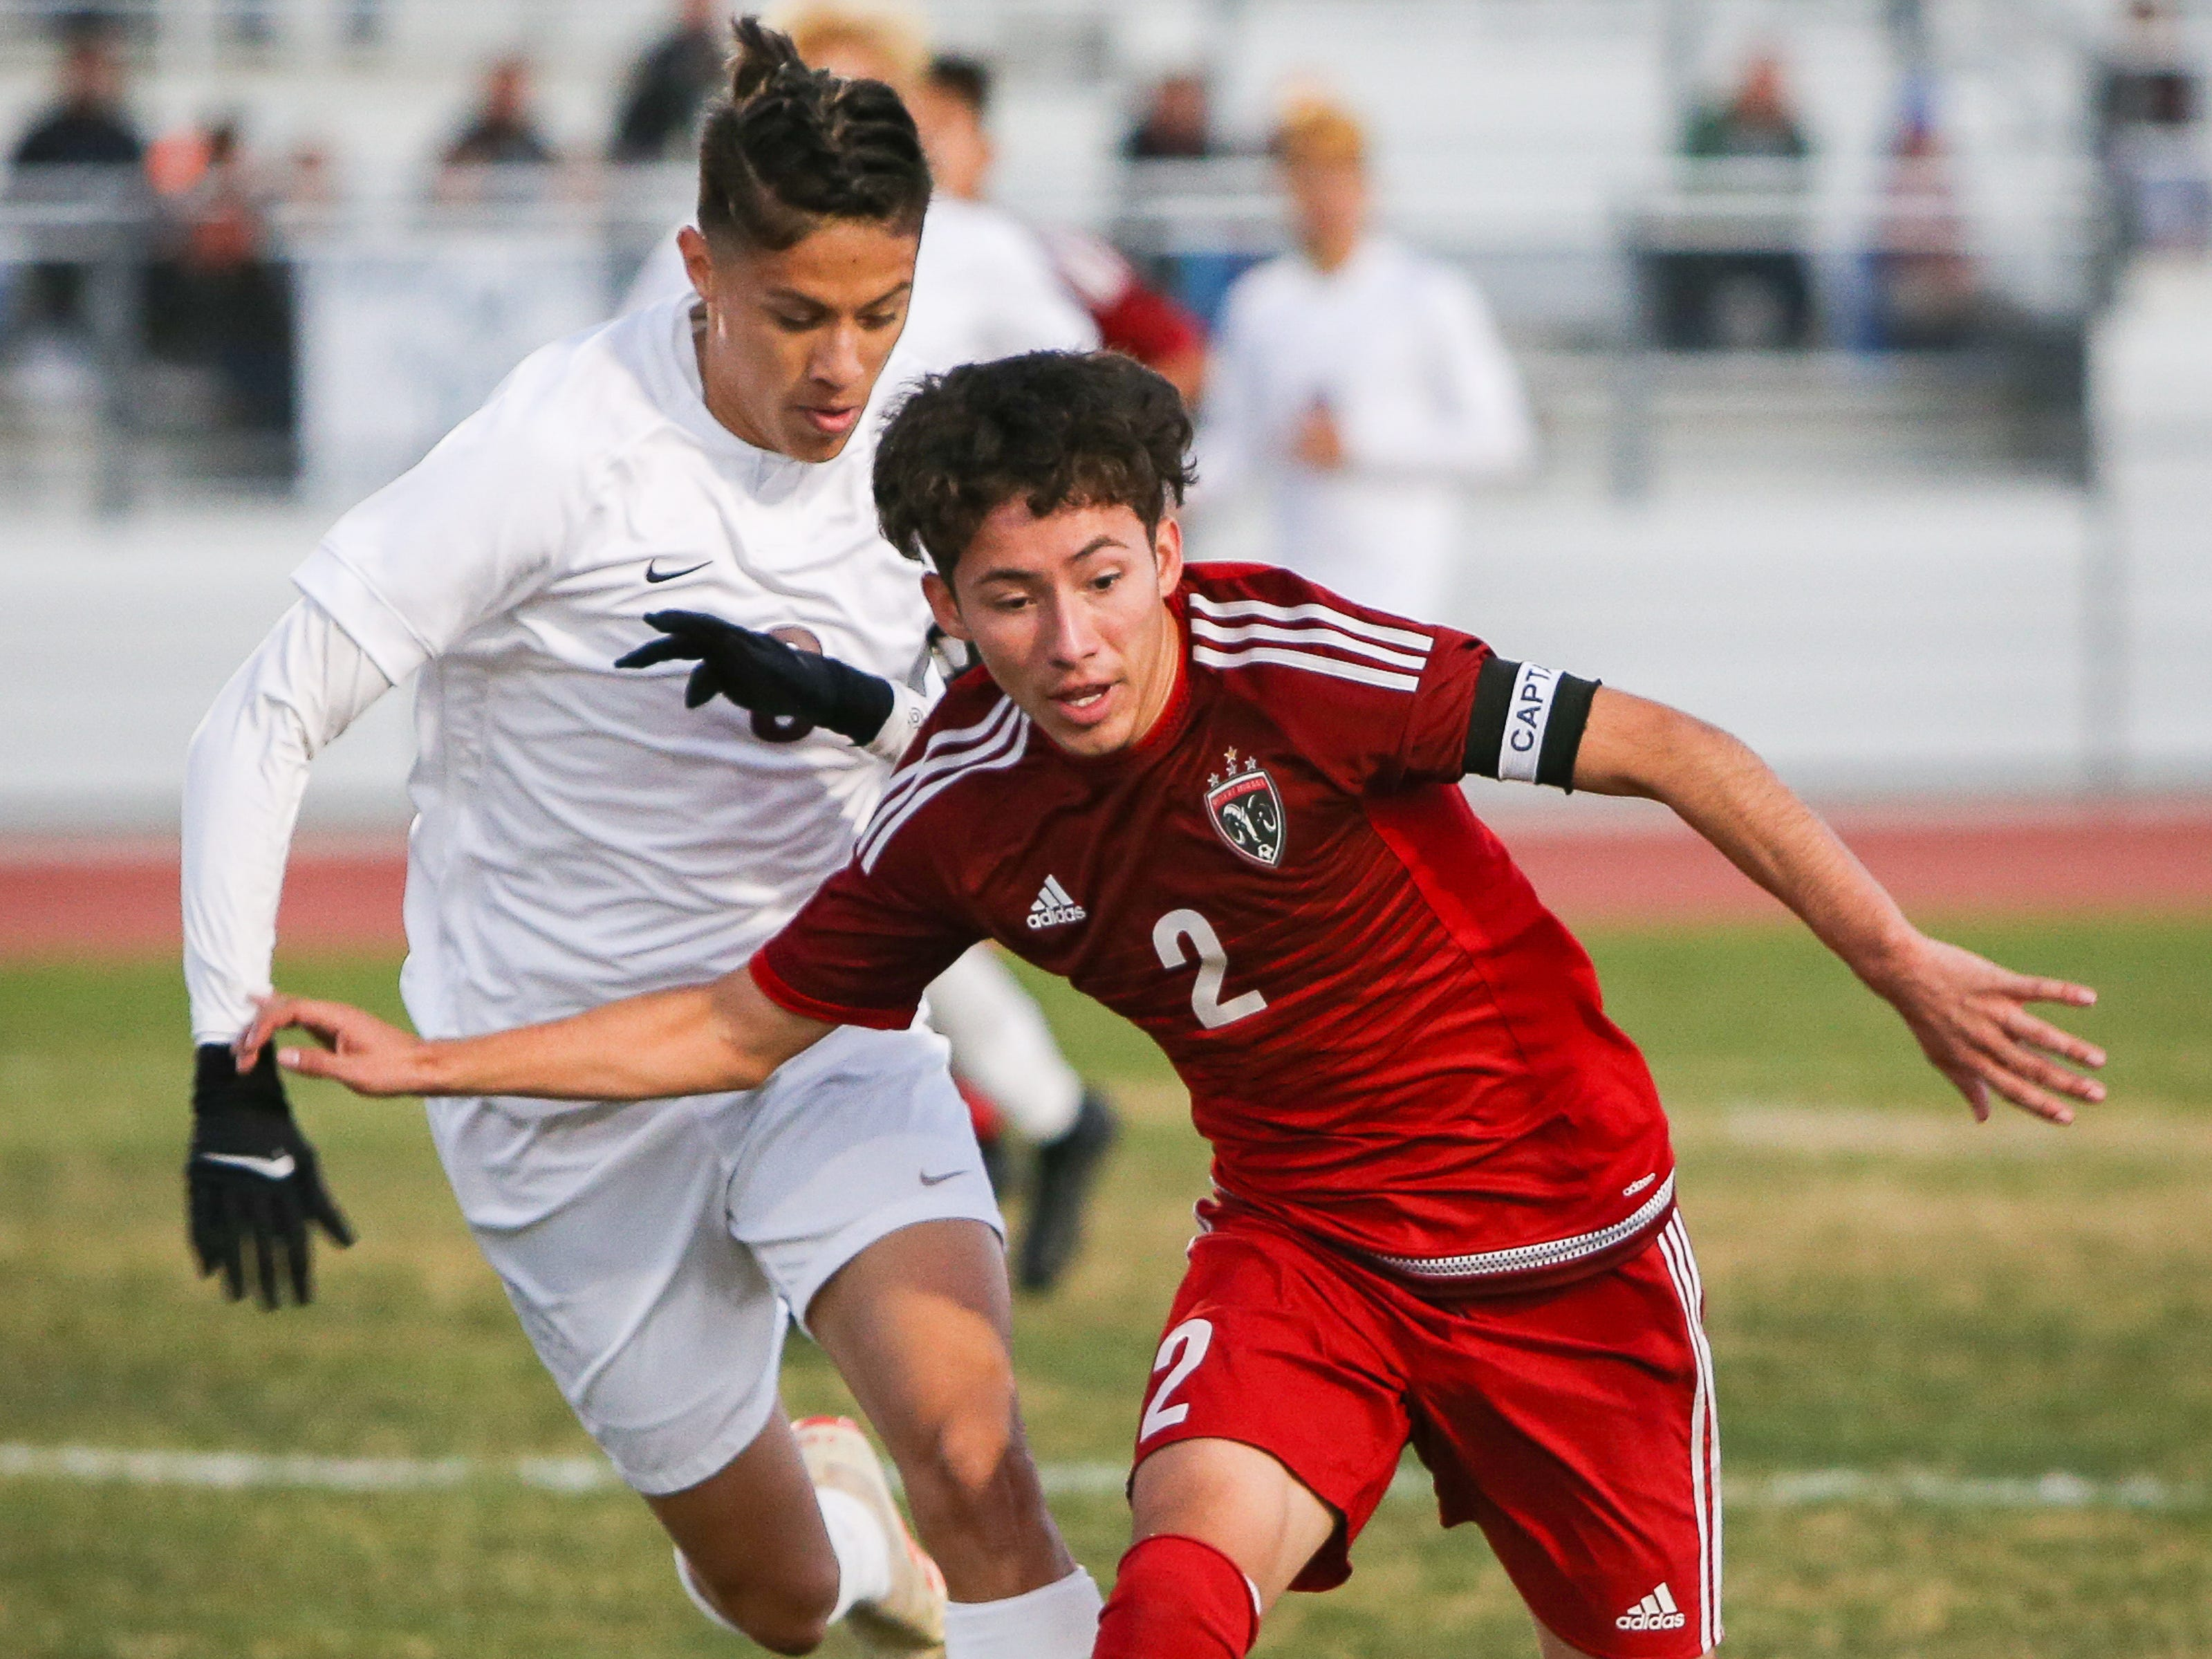 Desert Mirage's Erick Serrano steals the ball from La Quinta's Cesar Rodriguez.